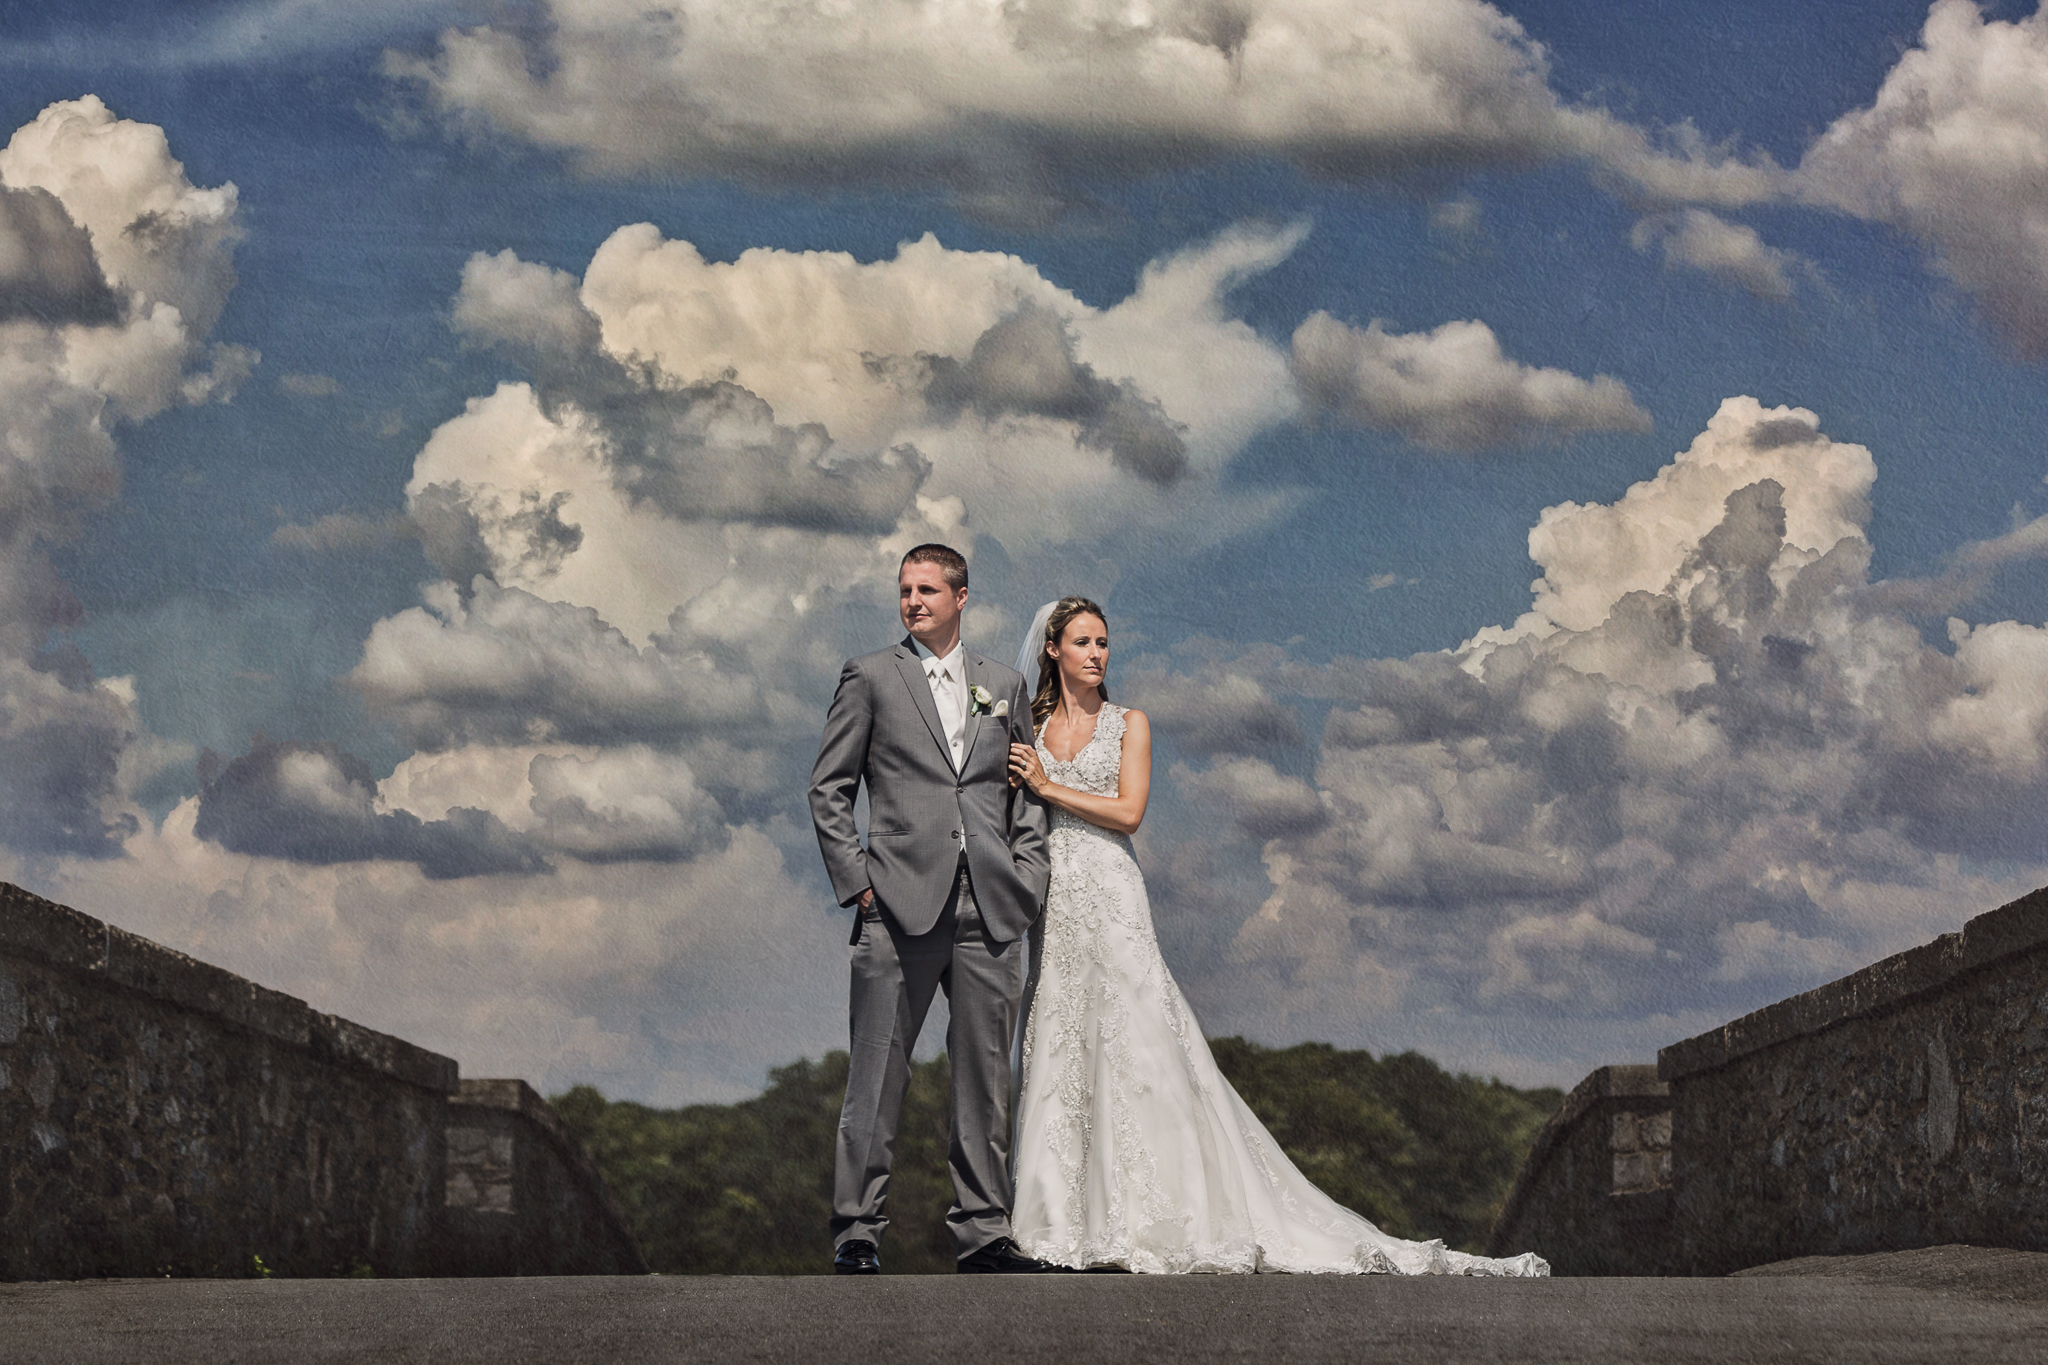 rhode-island-dramatic-summer-wedding-portrait.jpg